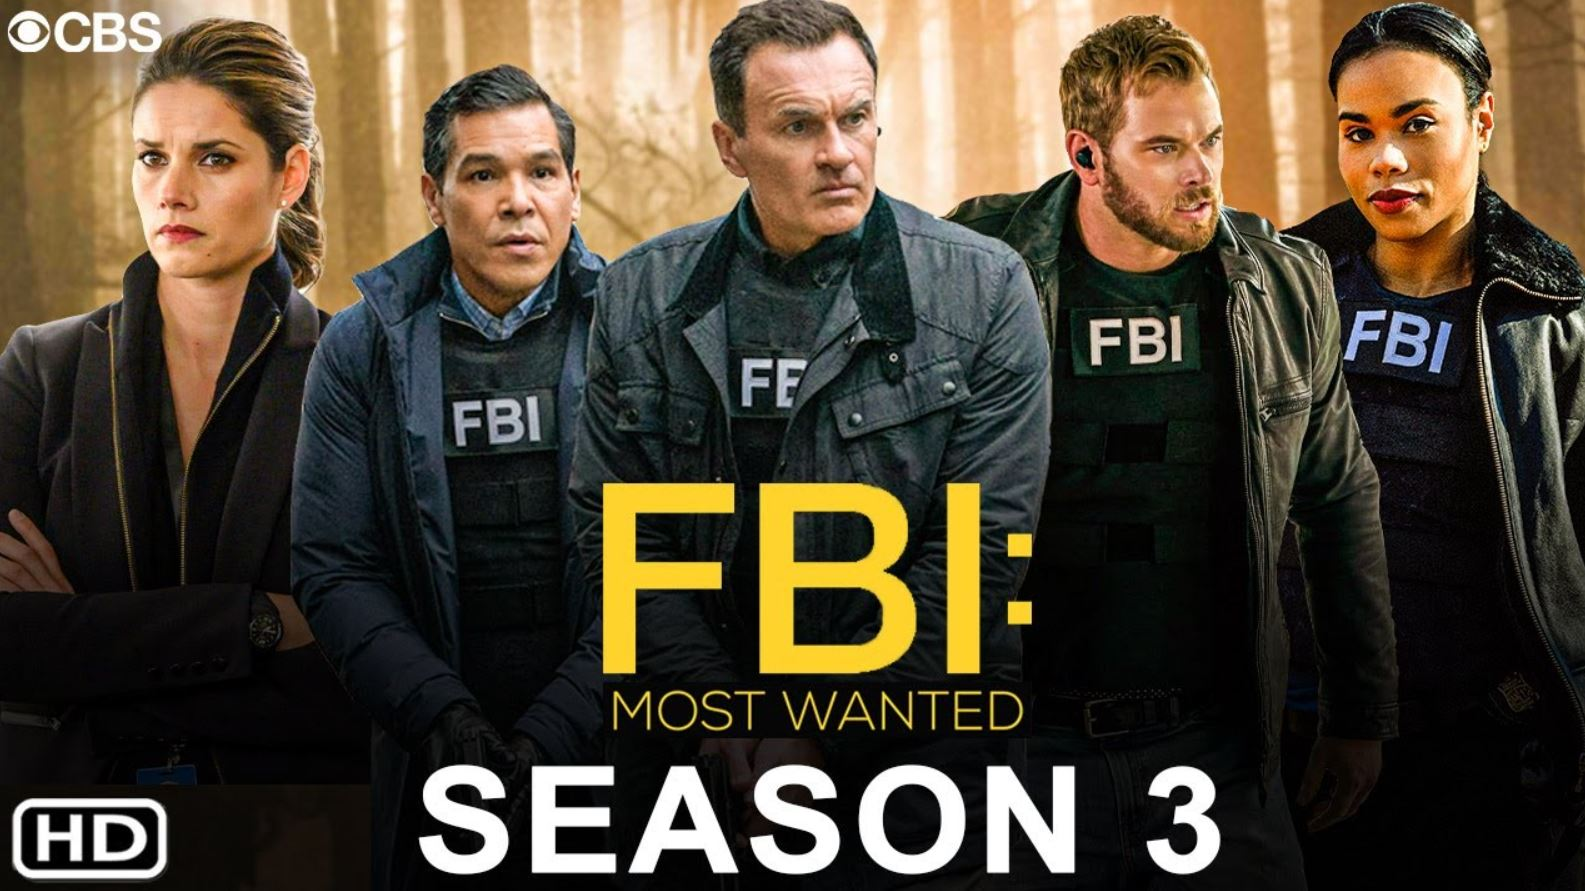 FBI Most Wanted Season 3: Everything We Know So Far - The Teal Mango